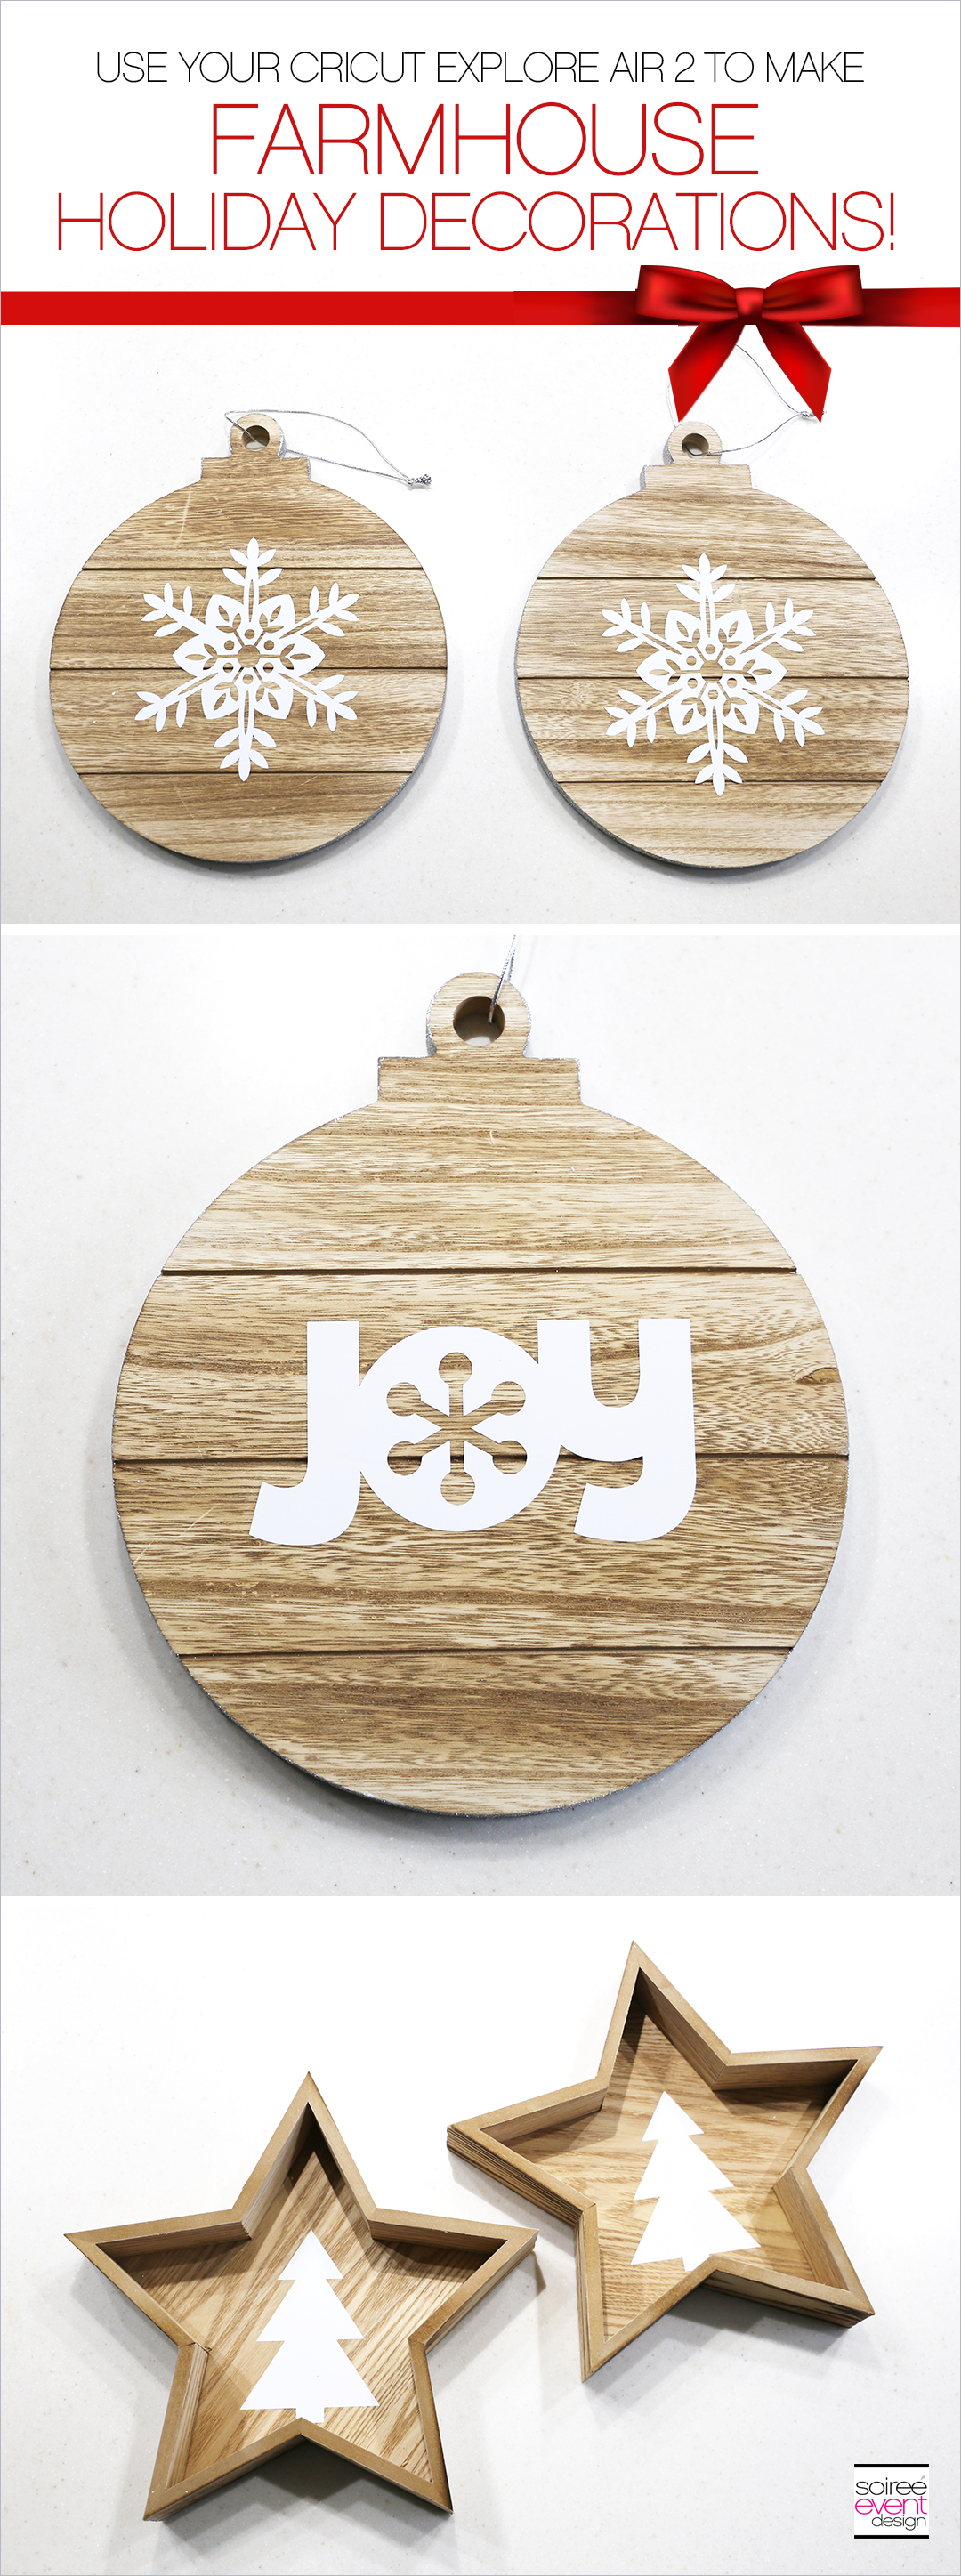 Farmhouse Holiday Decorations With Cricut Soiree Event